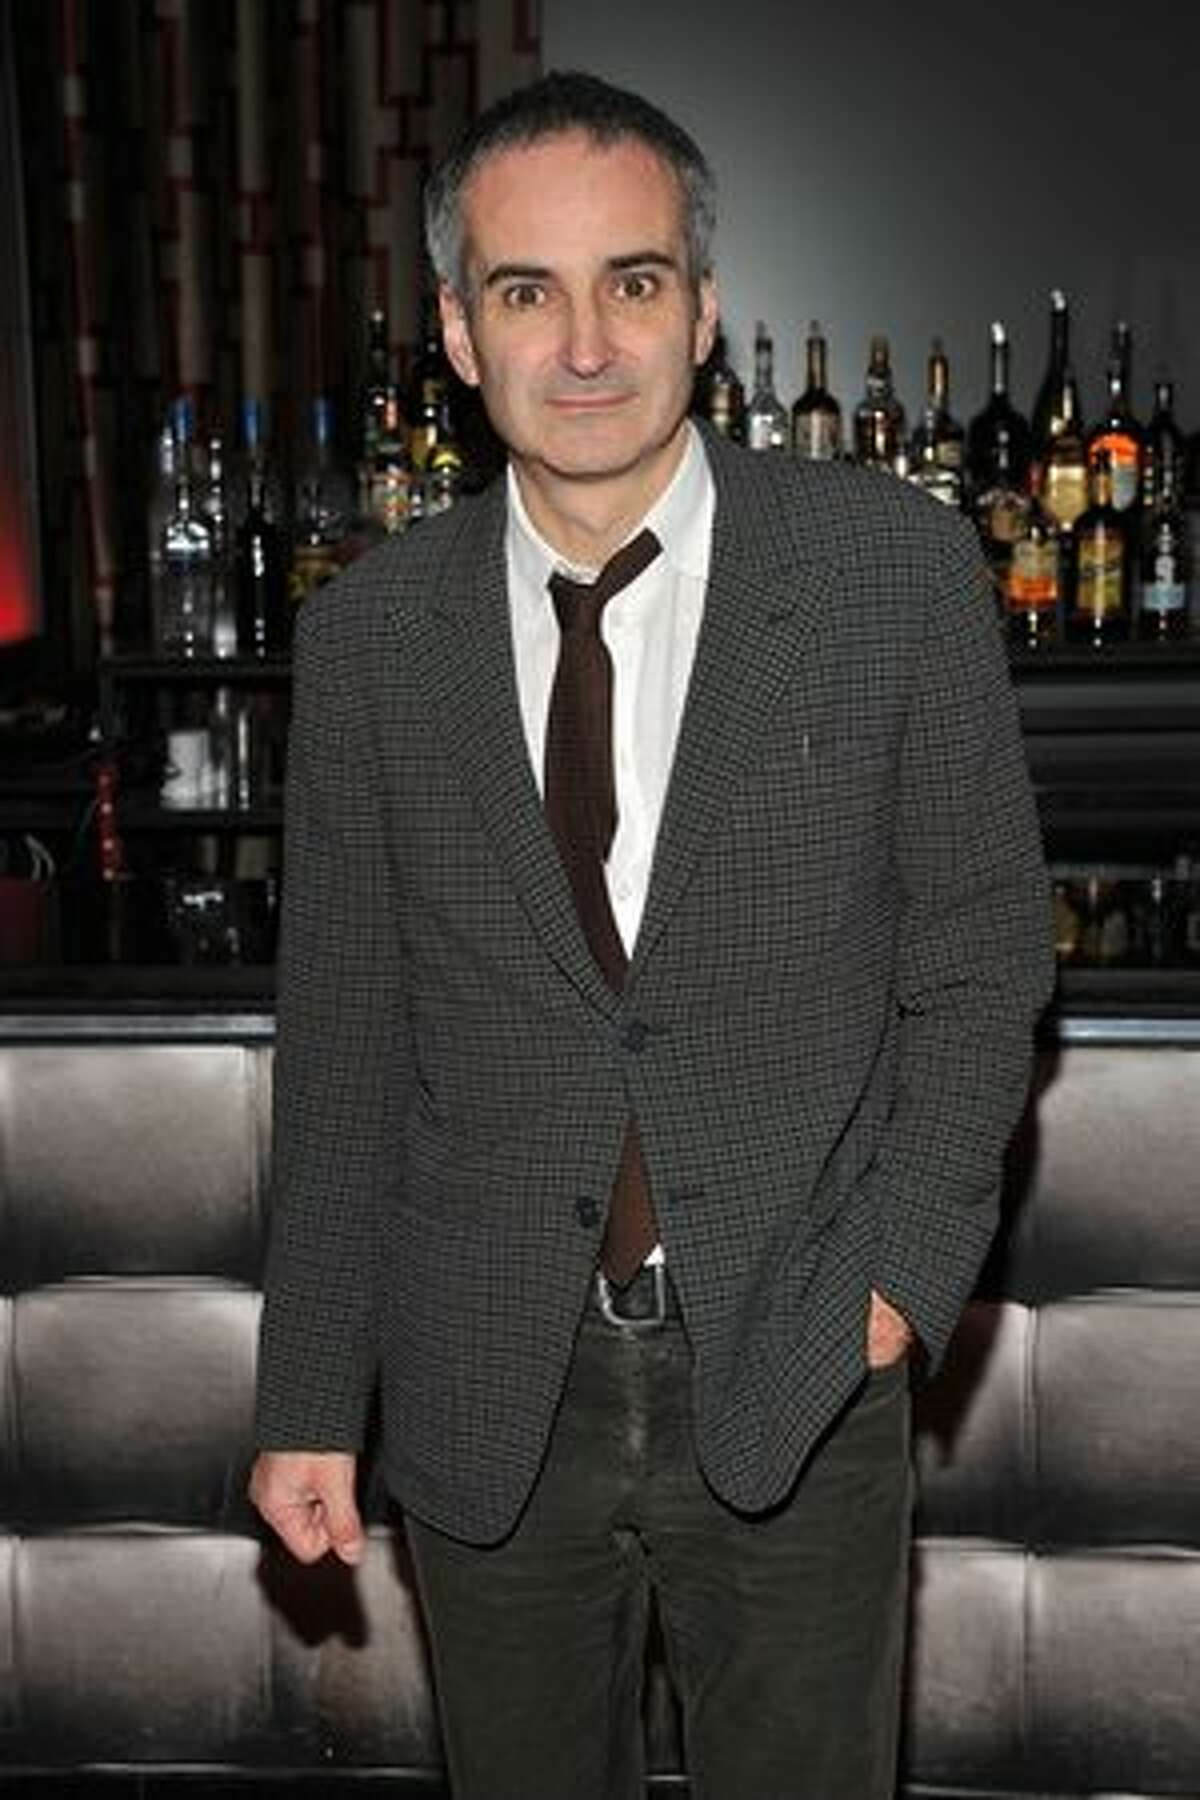 Director Olivier Assayas attends the 2010 New York Film Critics Circle Awards at Crimson in New York City.